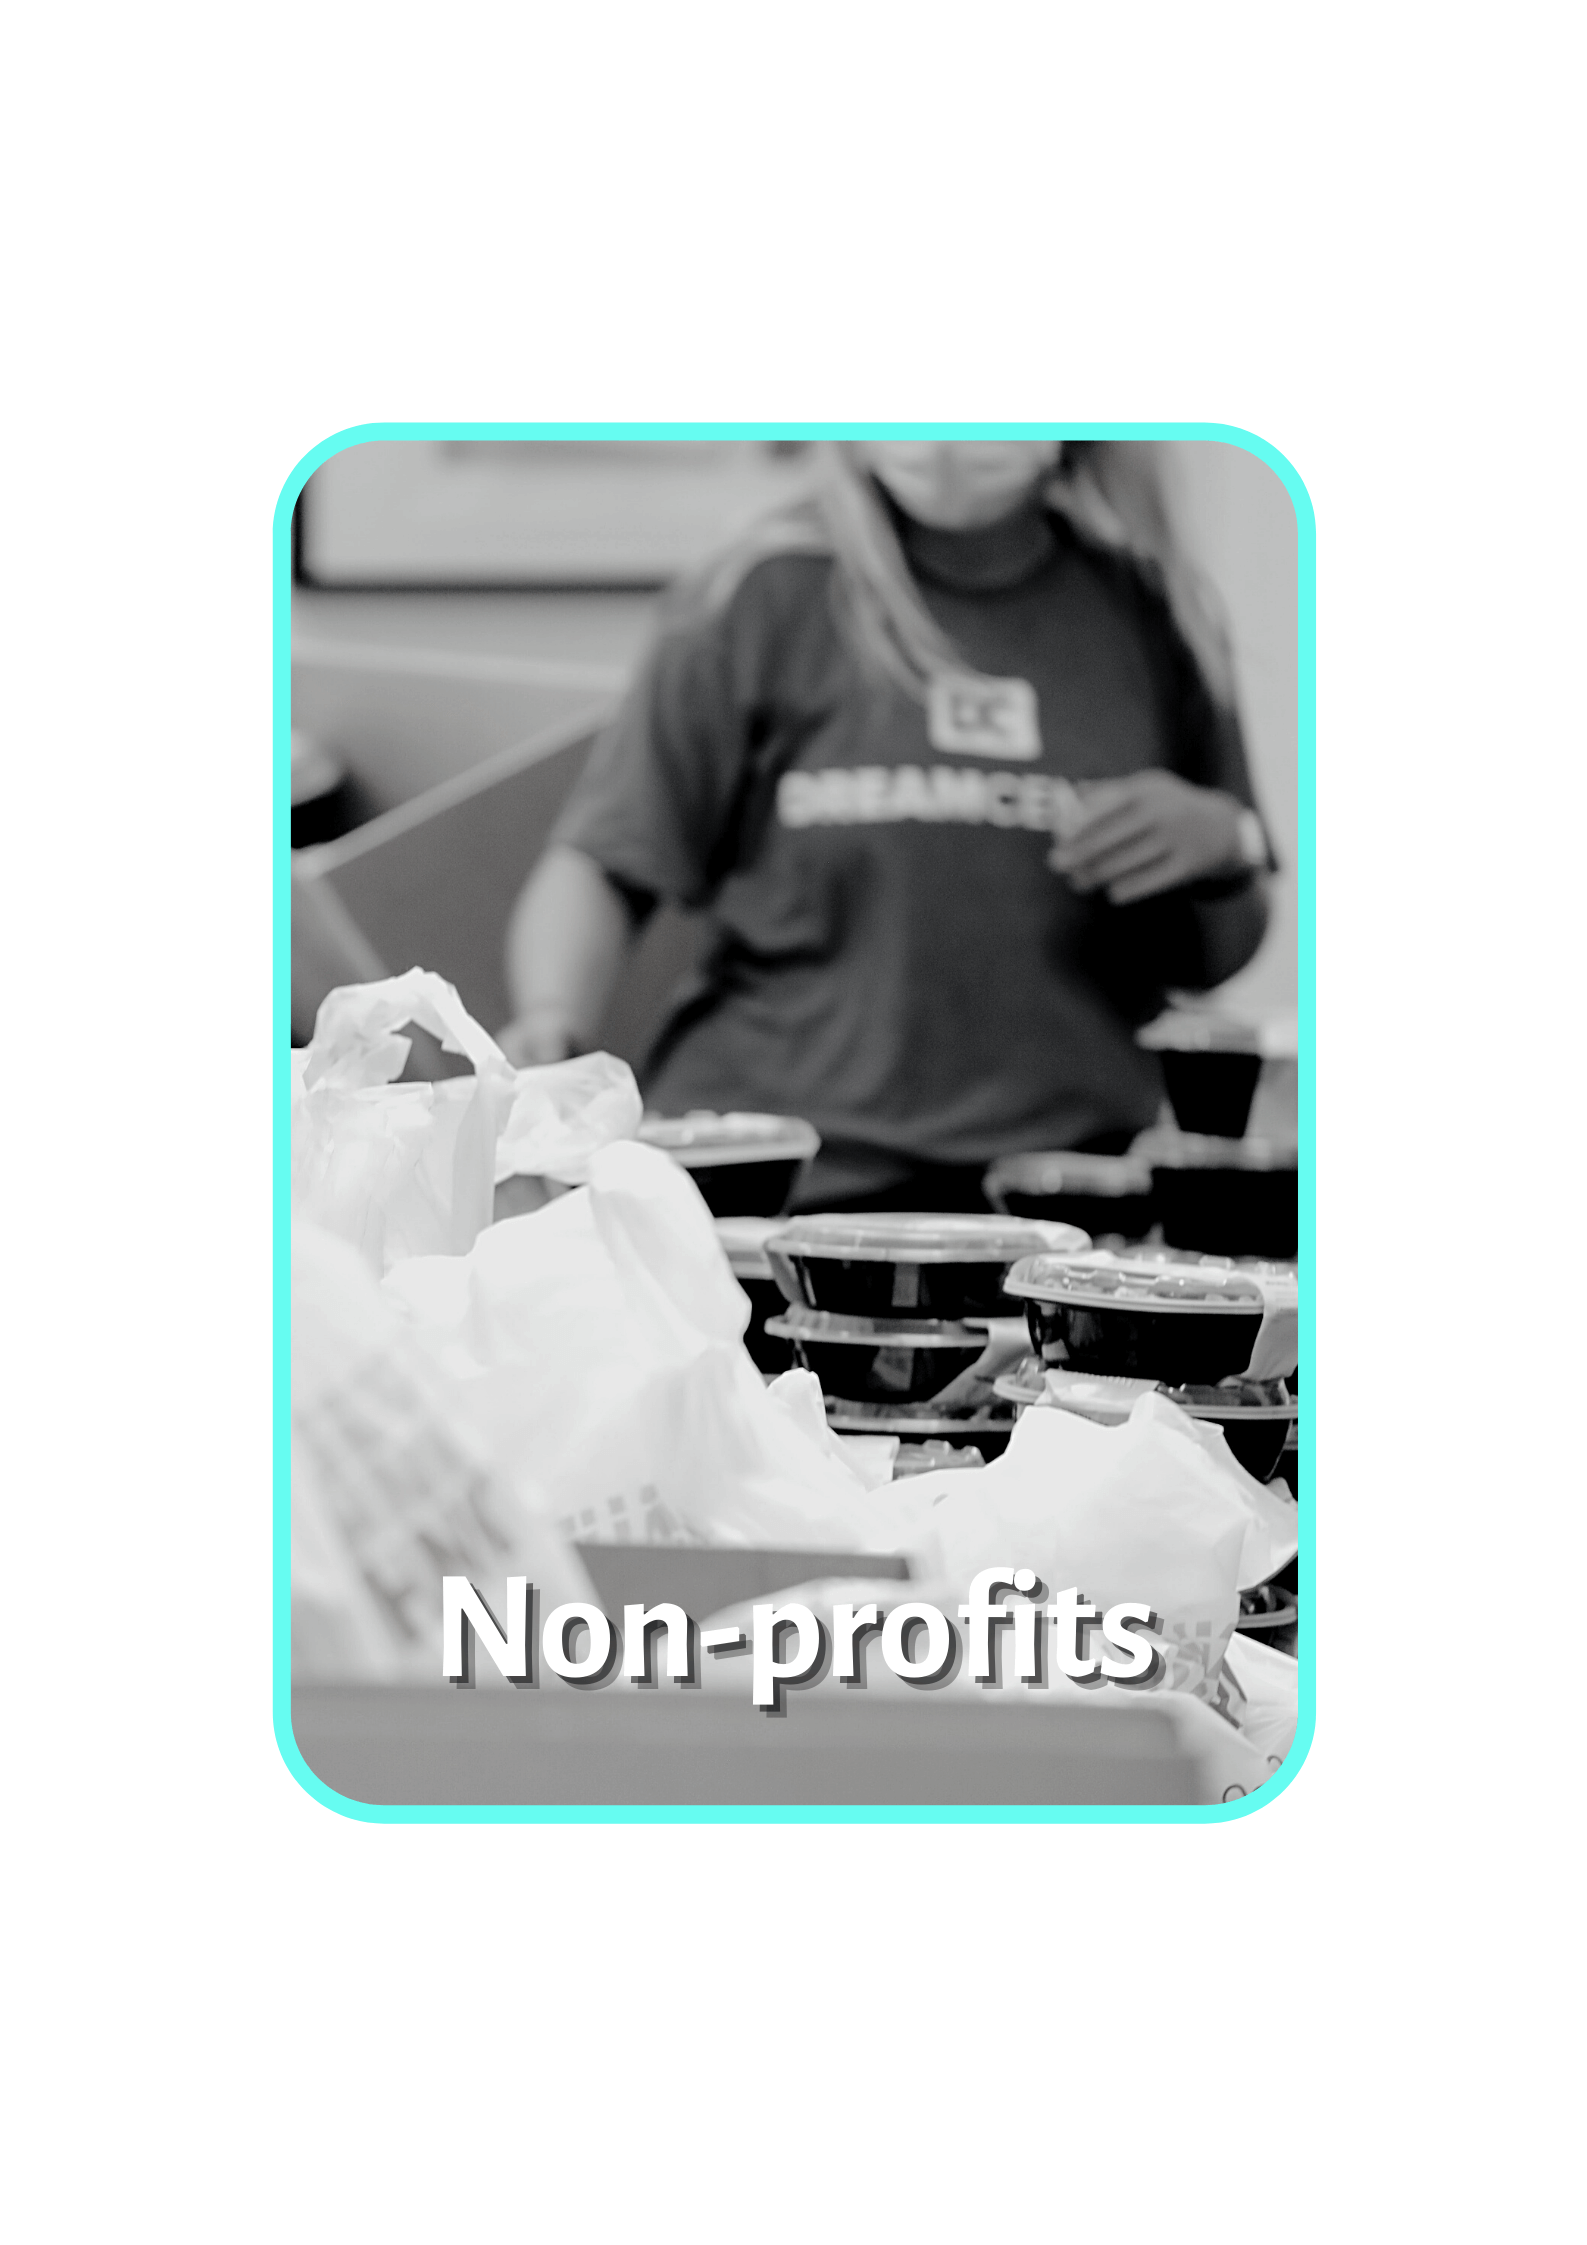 The Backstage App For Non-Profits